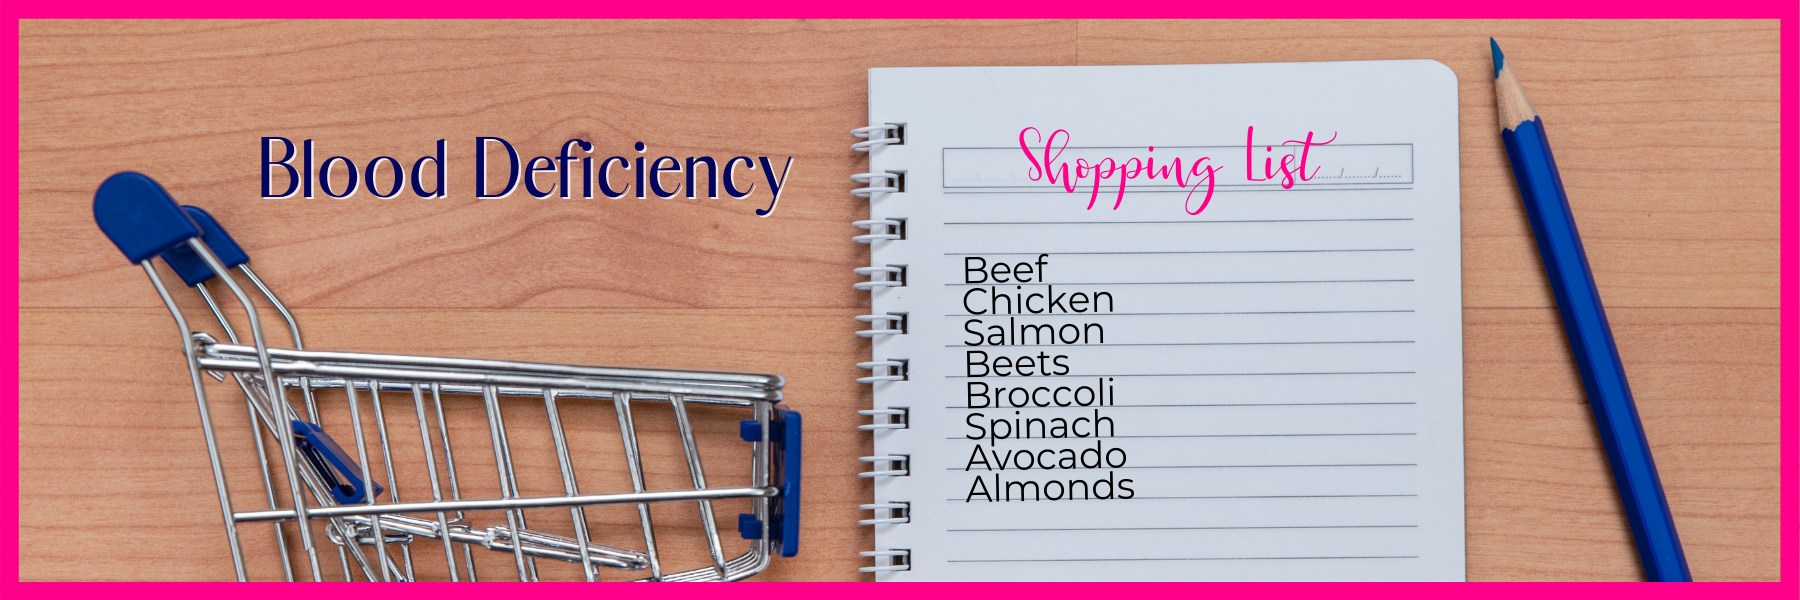 Blood Deficiency Shopping List